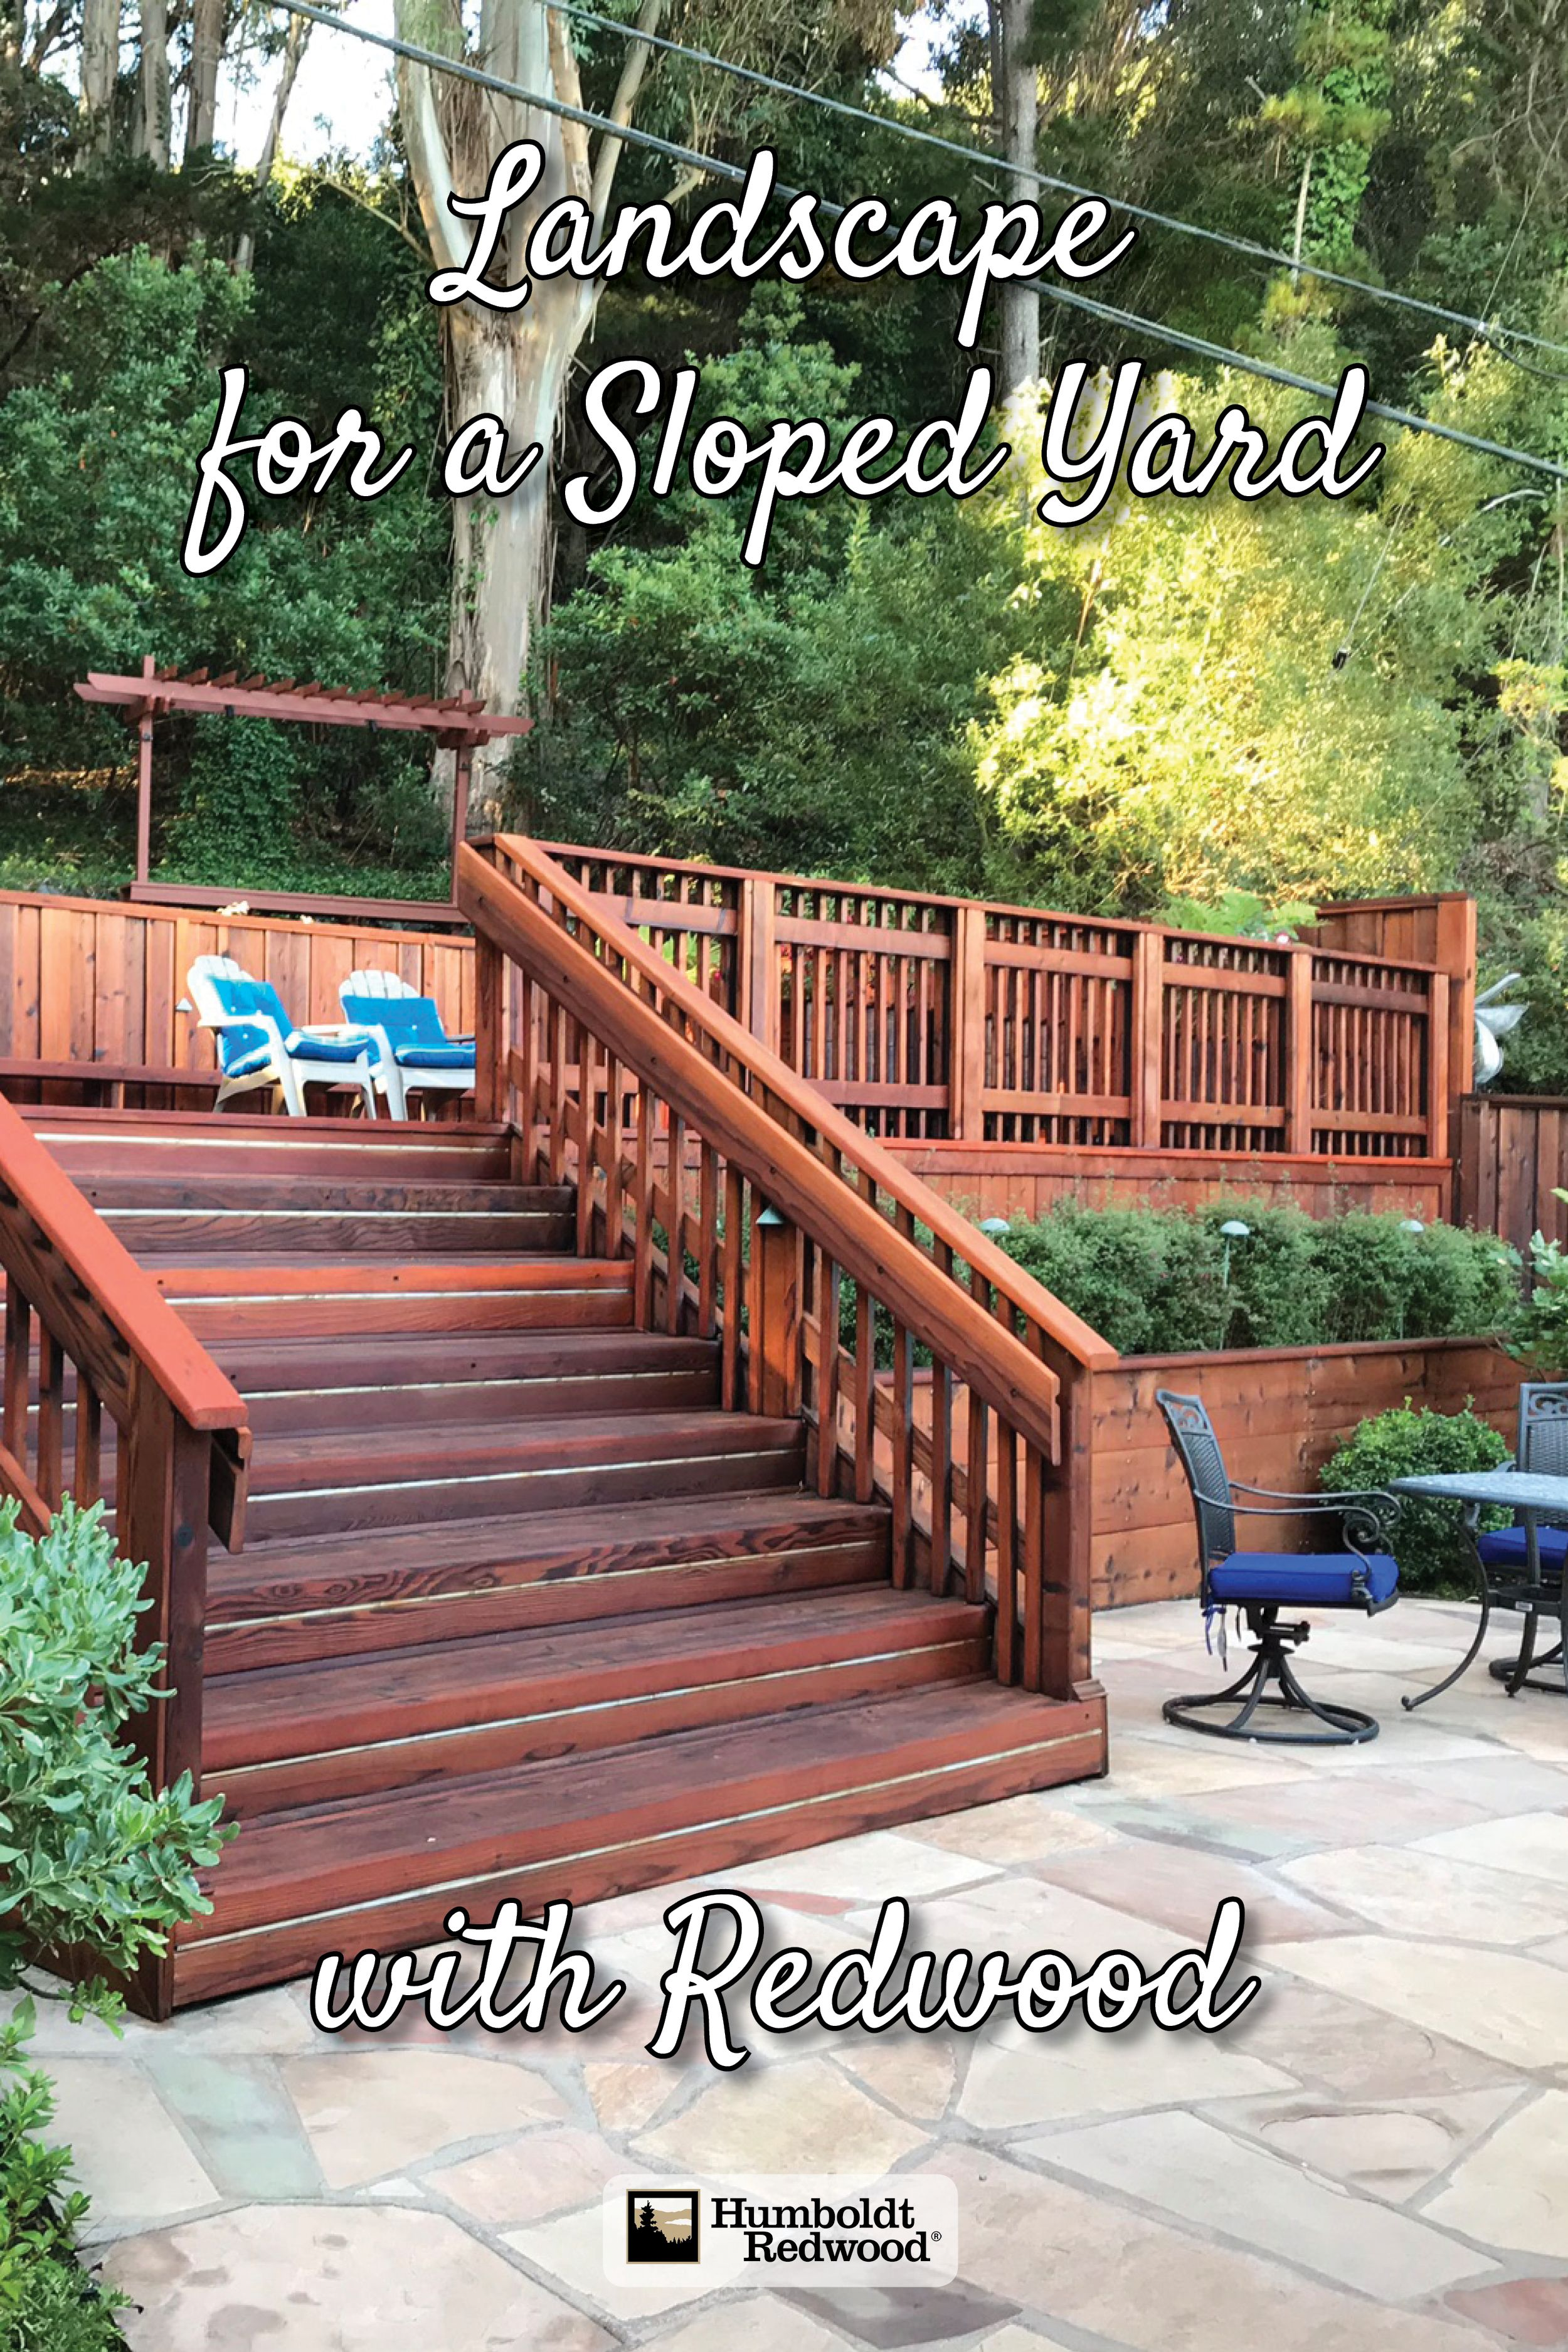 Find More Inspiration Photos On Our Website Www Getredwood Com Project Designed And Built Landscaping On A Hill Backyard Landscaping Designs Redwood Decking